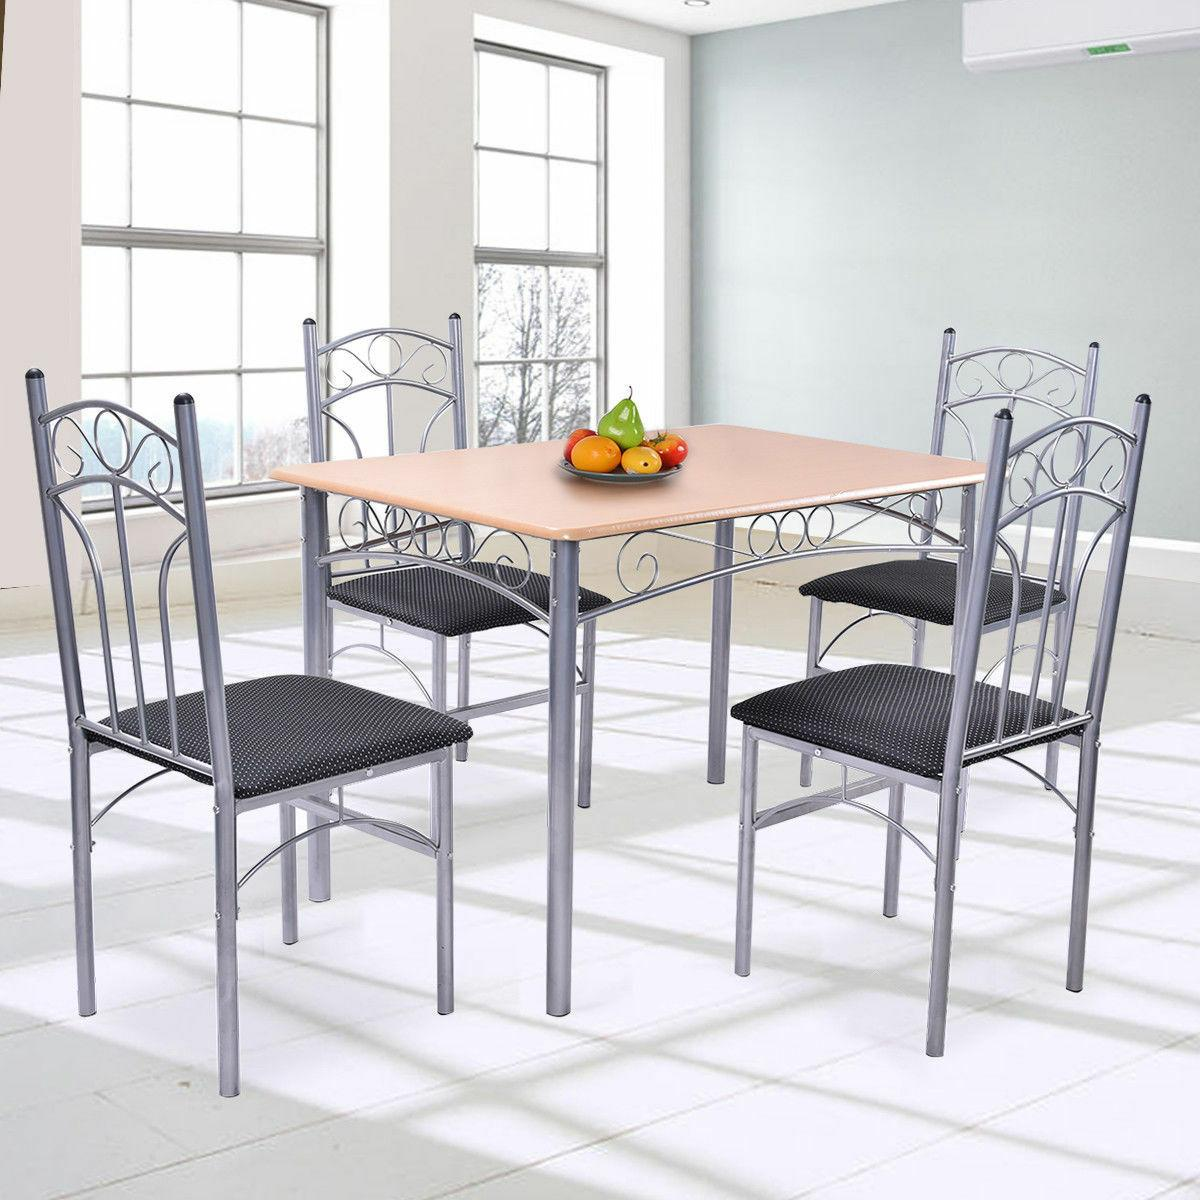 5PCS Dining Table and Home Furniture